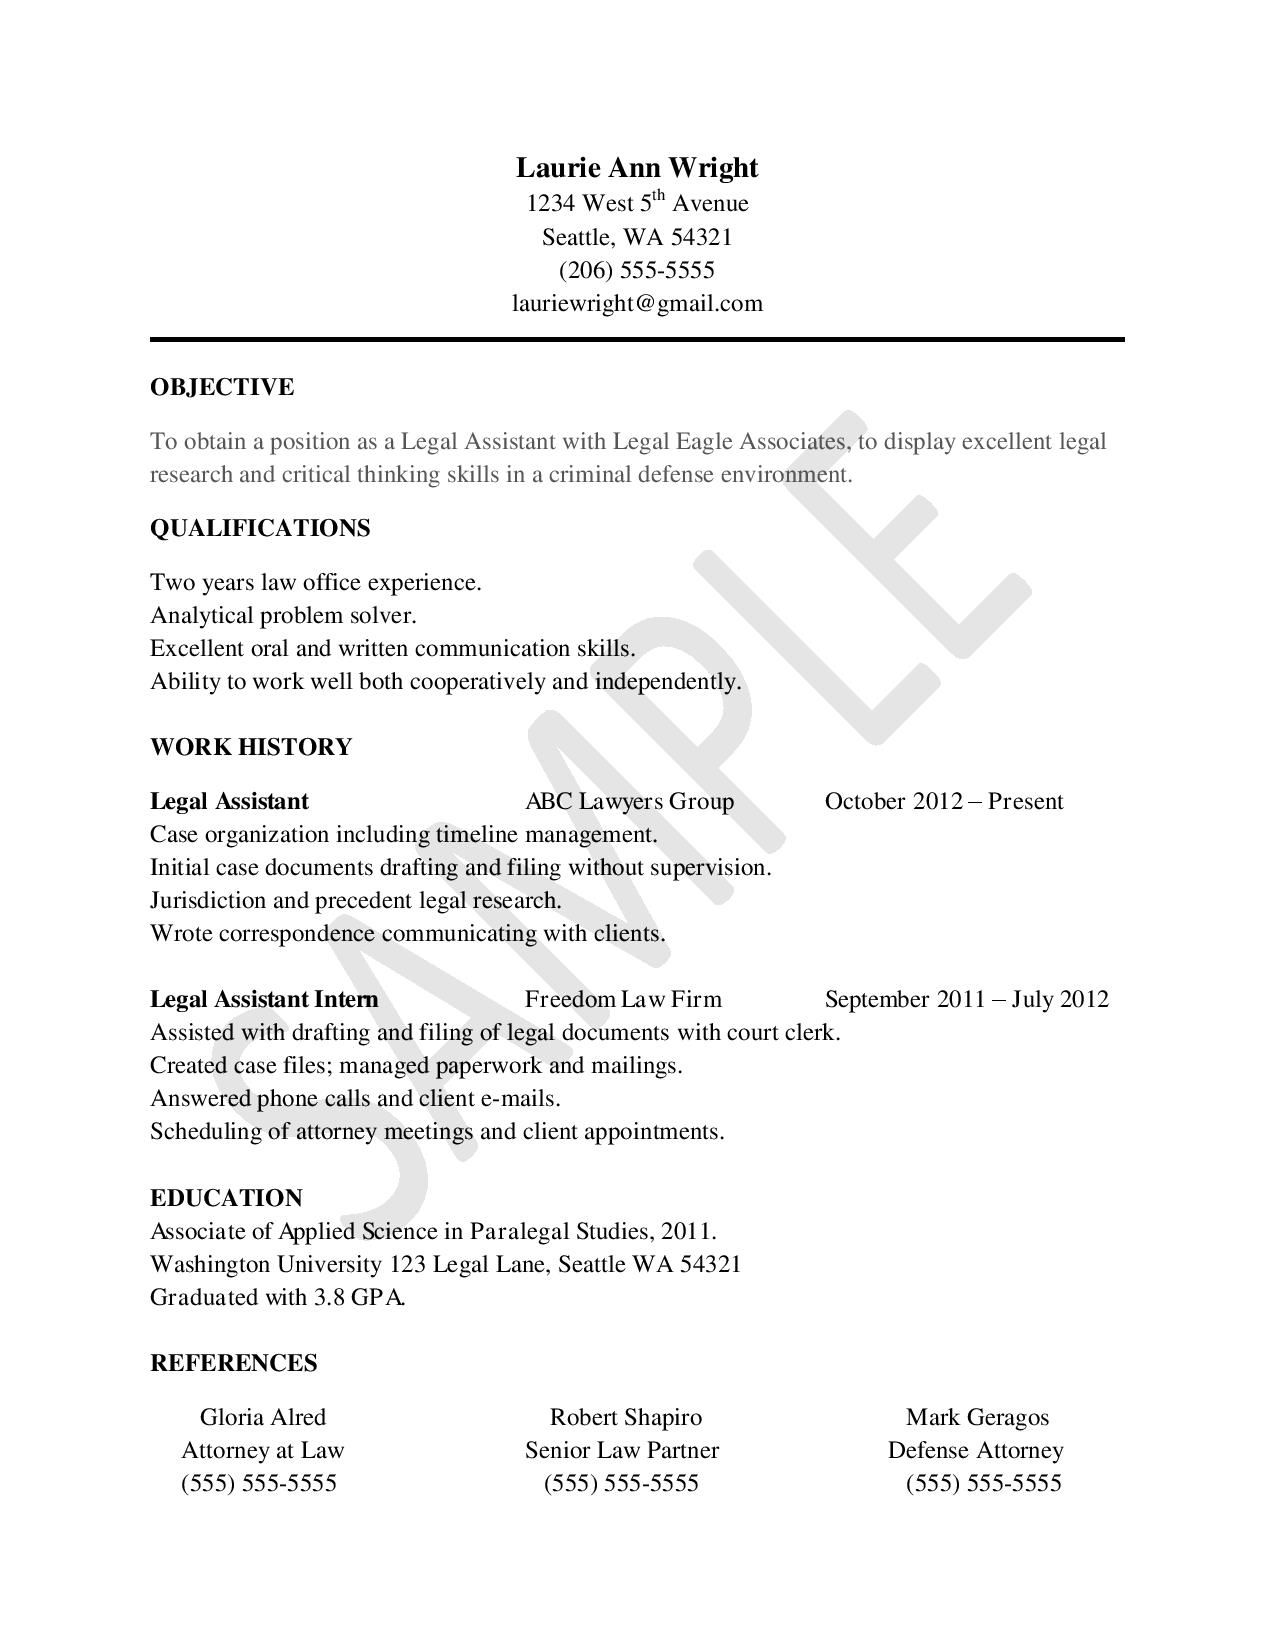 Free Examples Of Resumes Sample Resume For Legal Assistants  Legalassistant